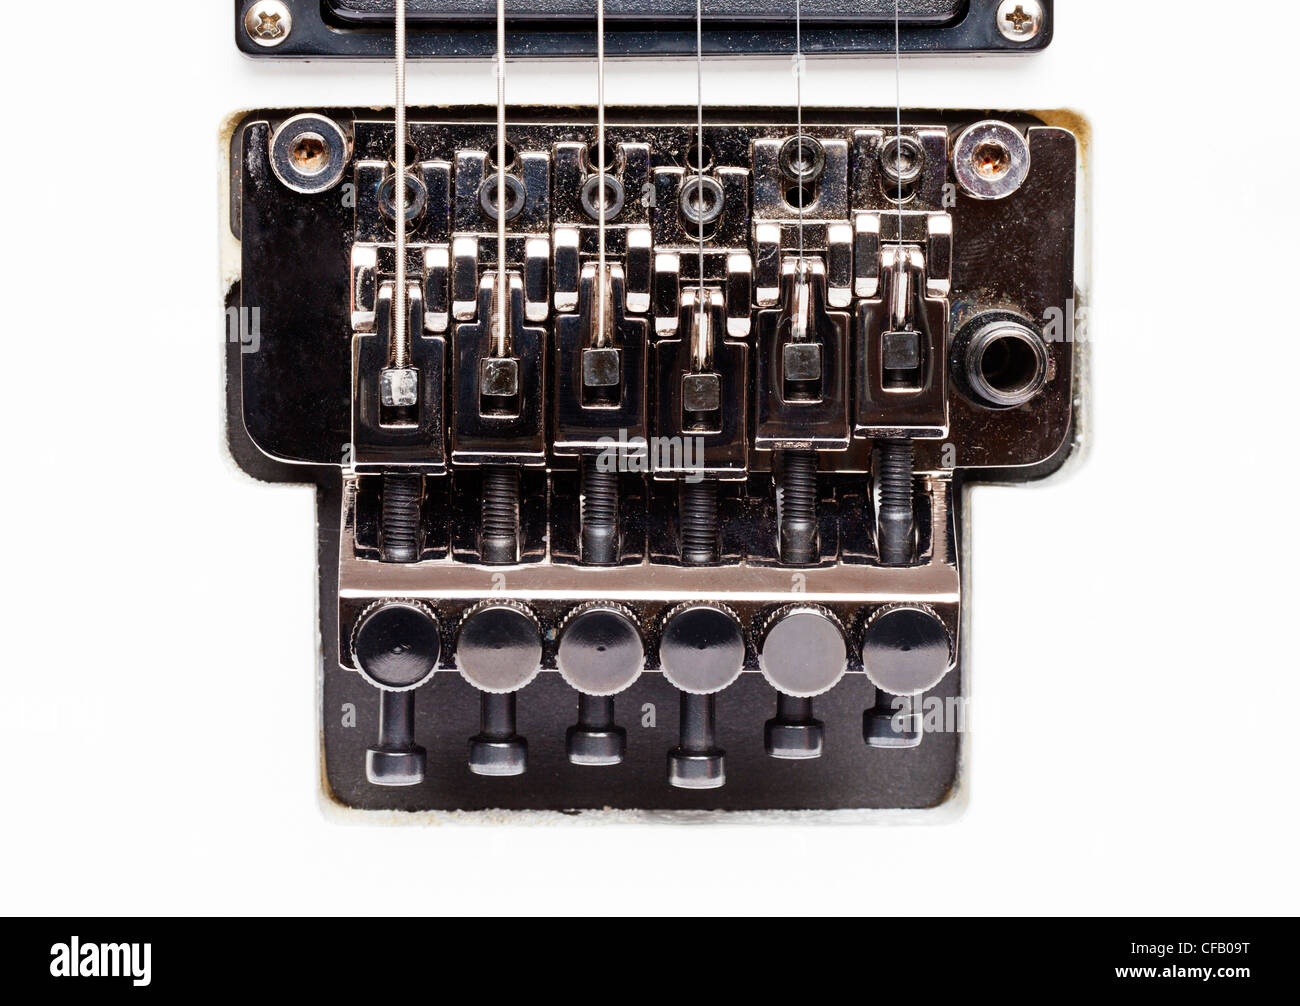 Floyd Rose electric guitar tremelo system - Stock Image